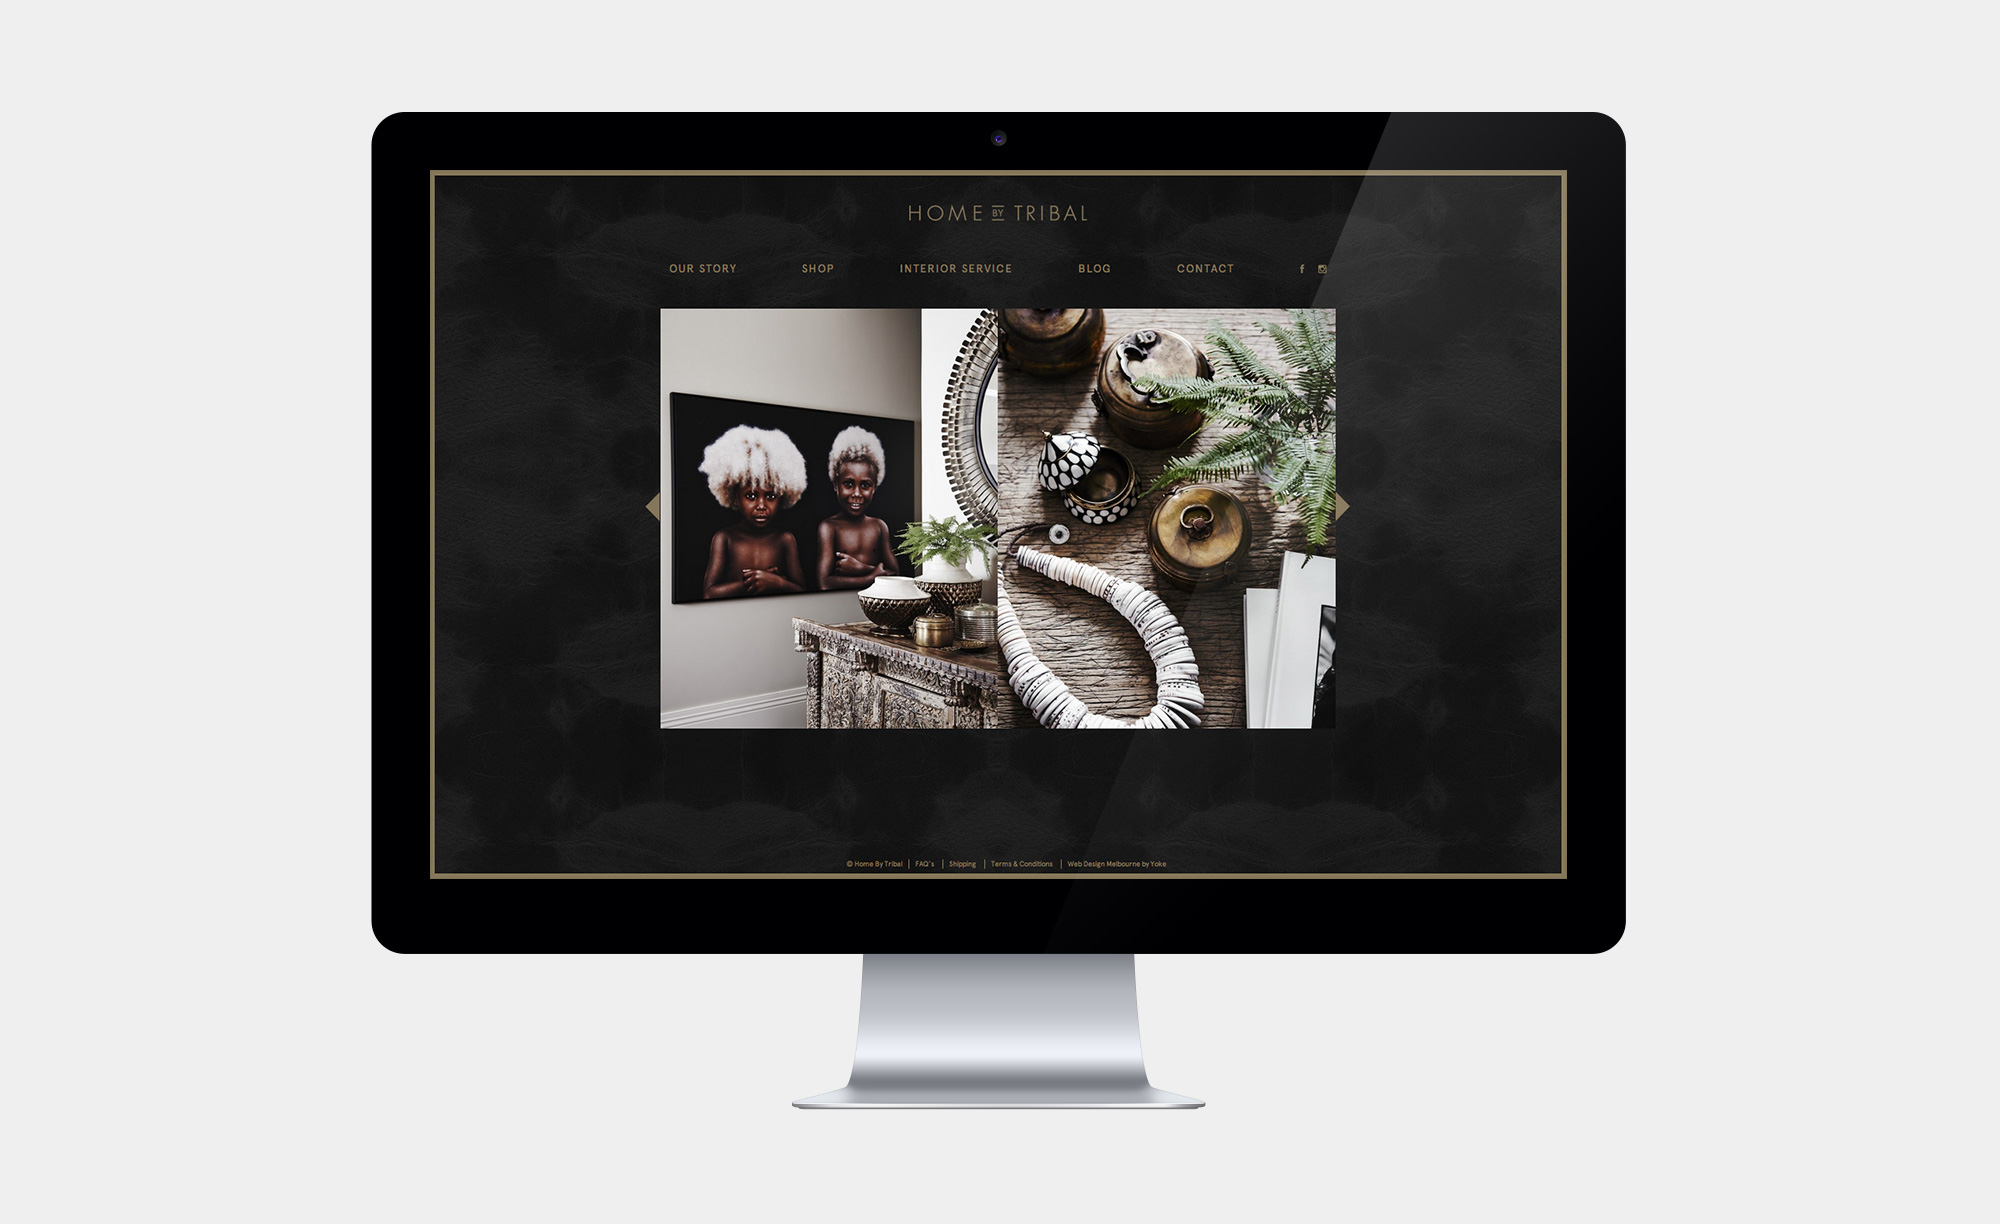 Image slider on the Home by Tribal website